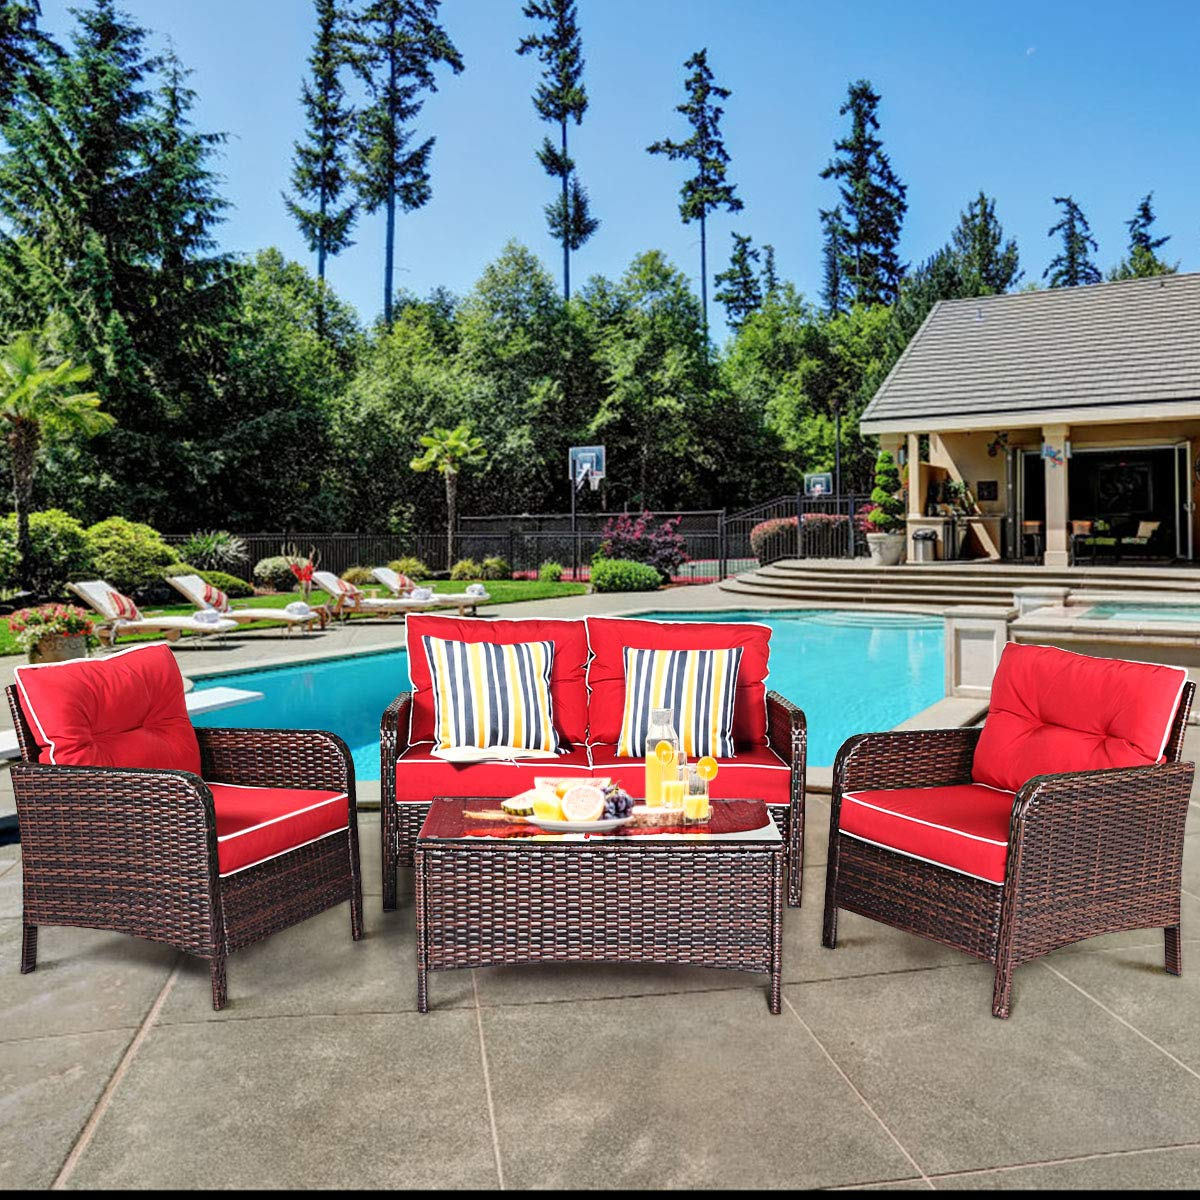 Tangkula 4 PCS Patio Furniture Set, Outdoor Rattan Wicker Sofa Comfortable Cushioned Seat, Garden Lawn Sectional Conversation Set with Glass Top Coffee Table (Red Cushion)